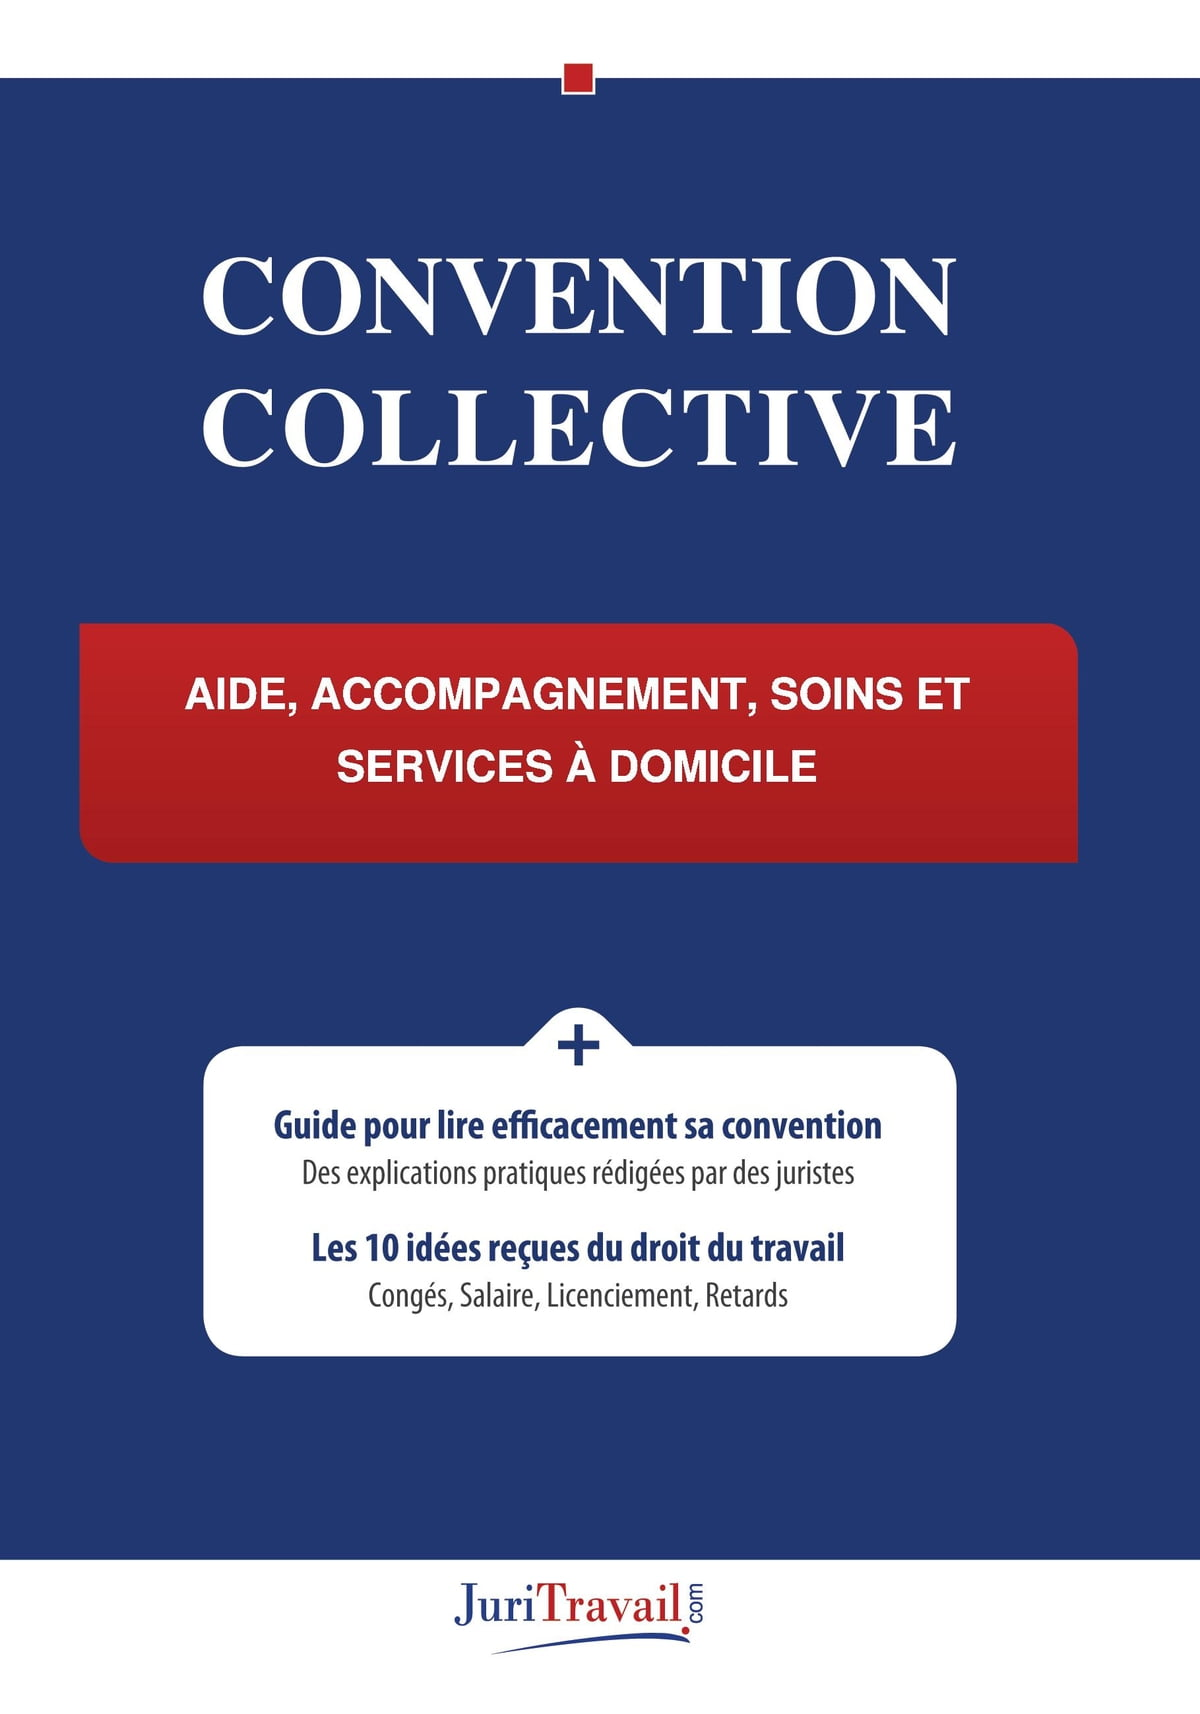 Convention Collective - Aide, accompagnement, soins et services à domicile  eBook by Juritravail - Rakuten Kobo